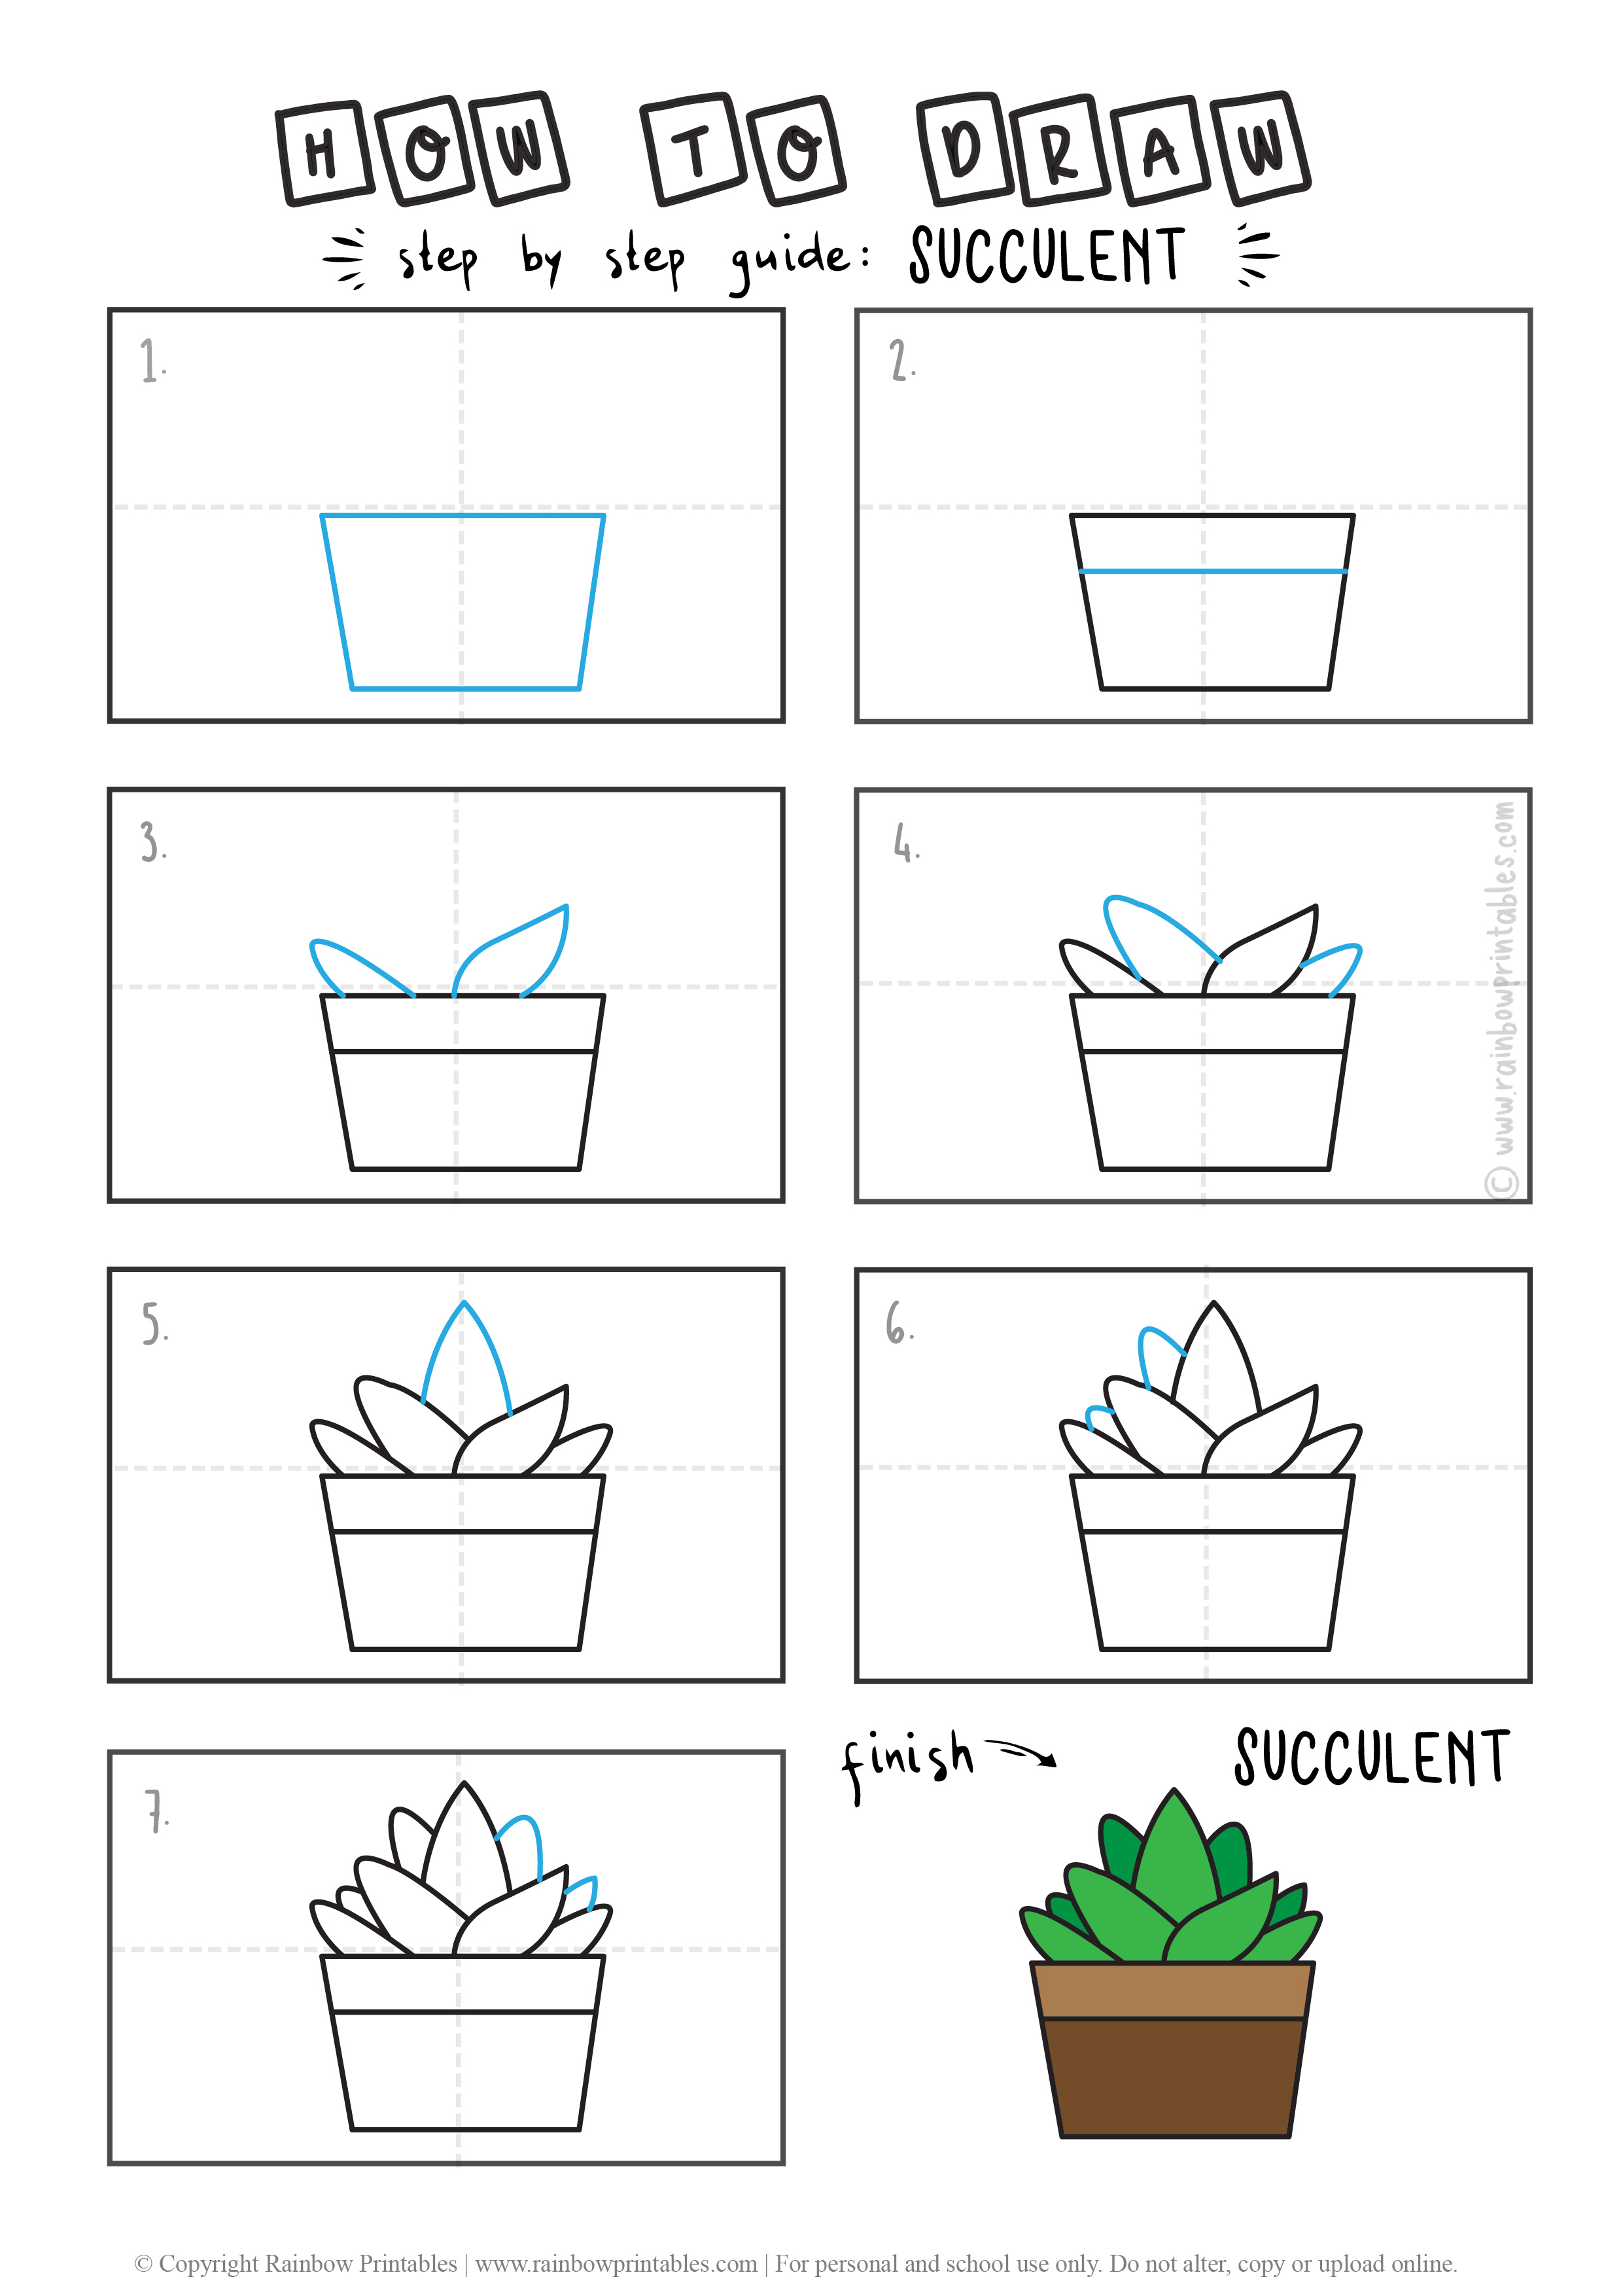 HOW TO DRAW A SUCCULENT PLANT CACTUS FLOWER GUIDE ILLUSTRATION STEP BY STEP EASY SIMPLE FOR KIDS